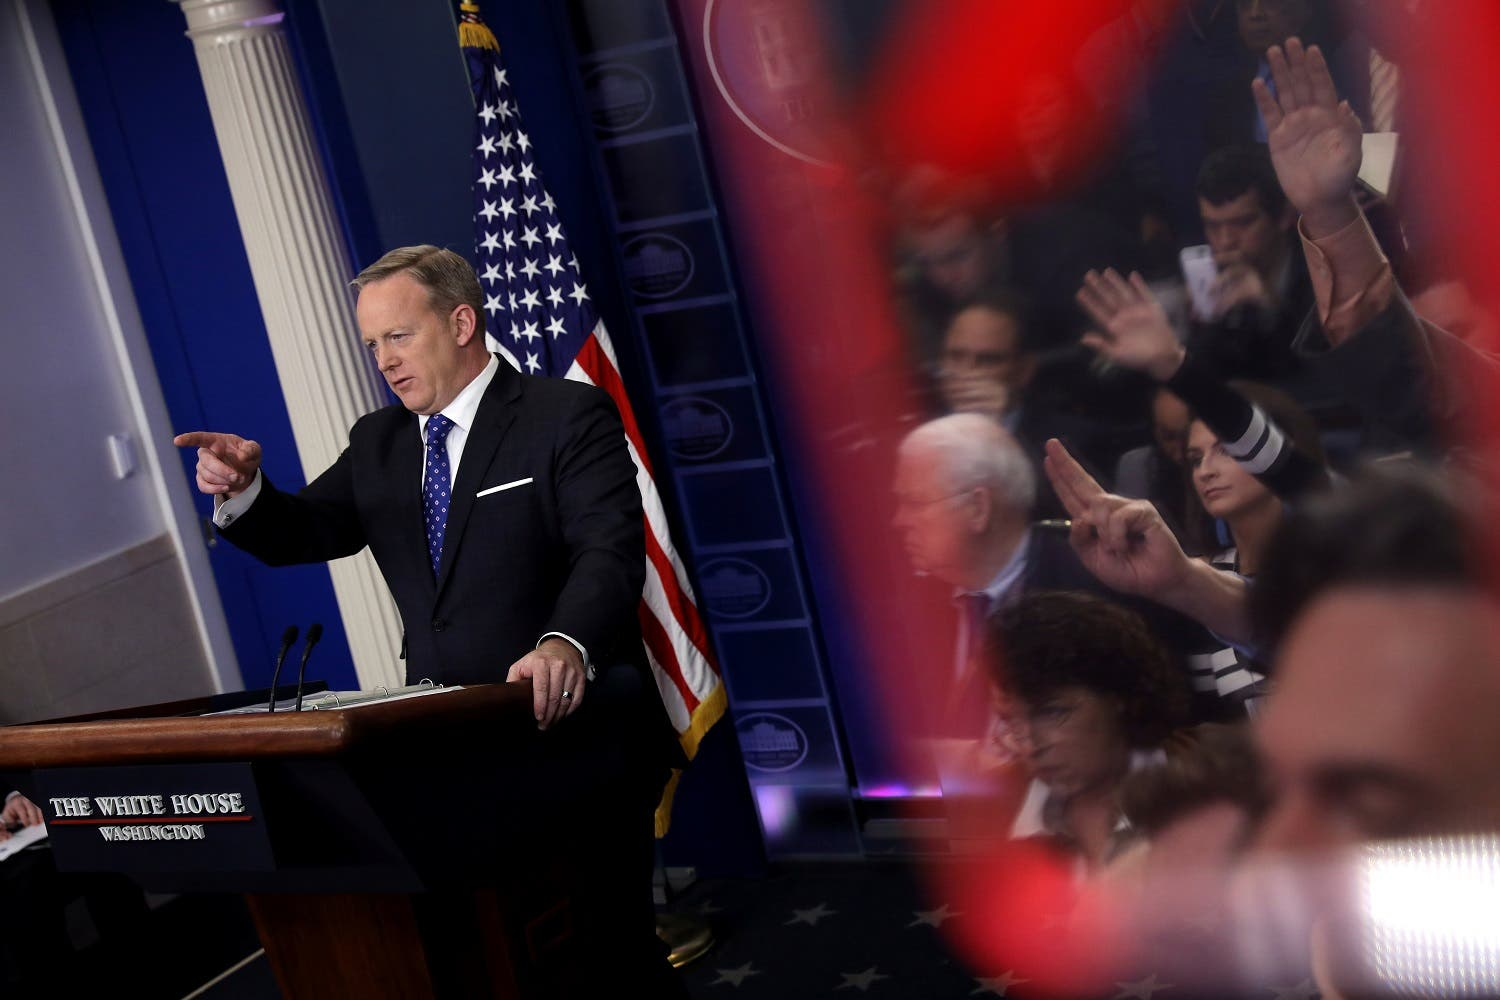 White House spokesman Sean Spicer has become the center of many stories over the past 100 days (Photo: Reuters/Carlos Barria)